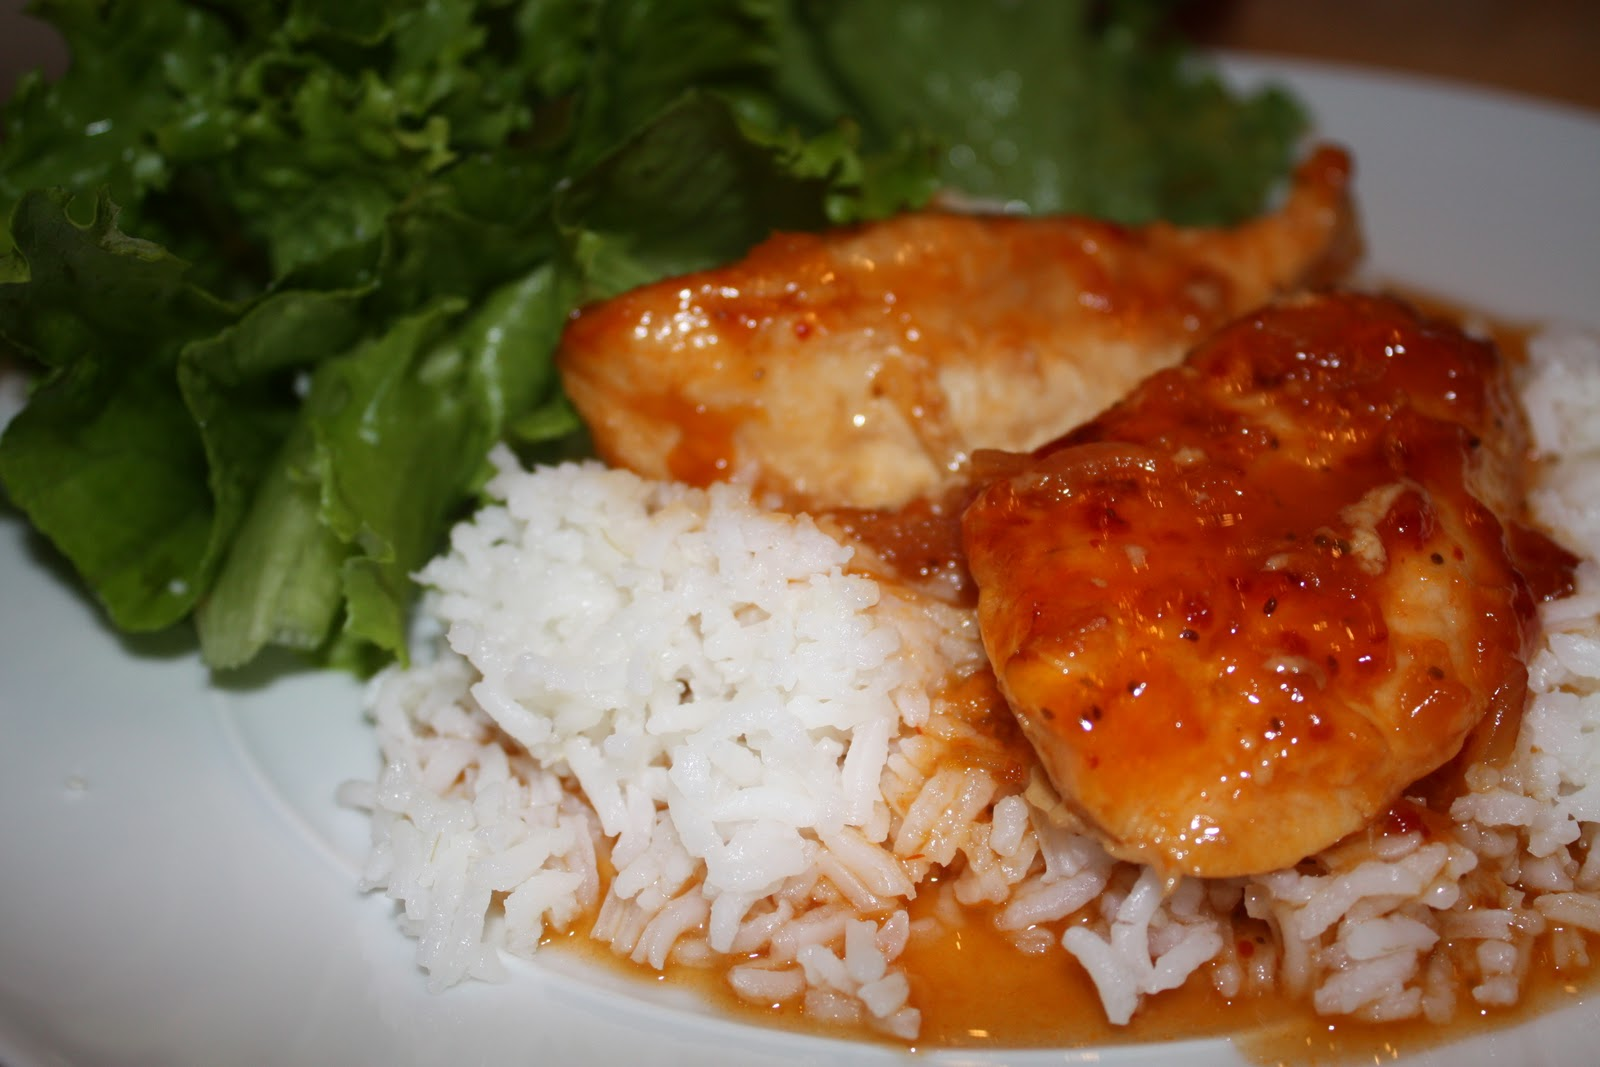 ... apricot glazed chicken apricot d i jon glazed chicken and i s apricot